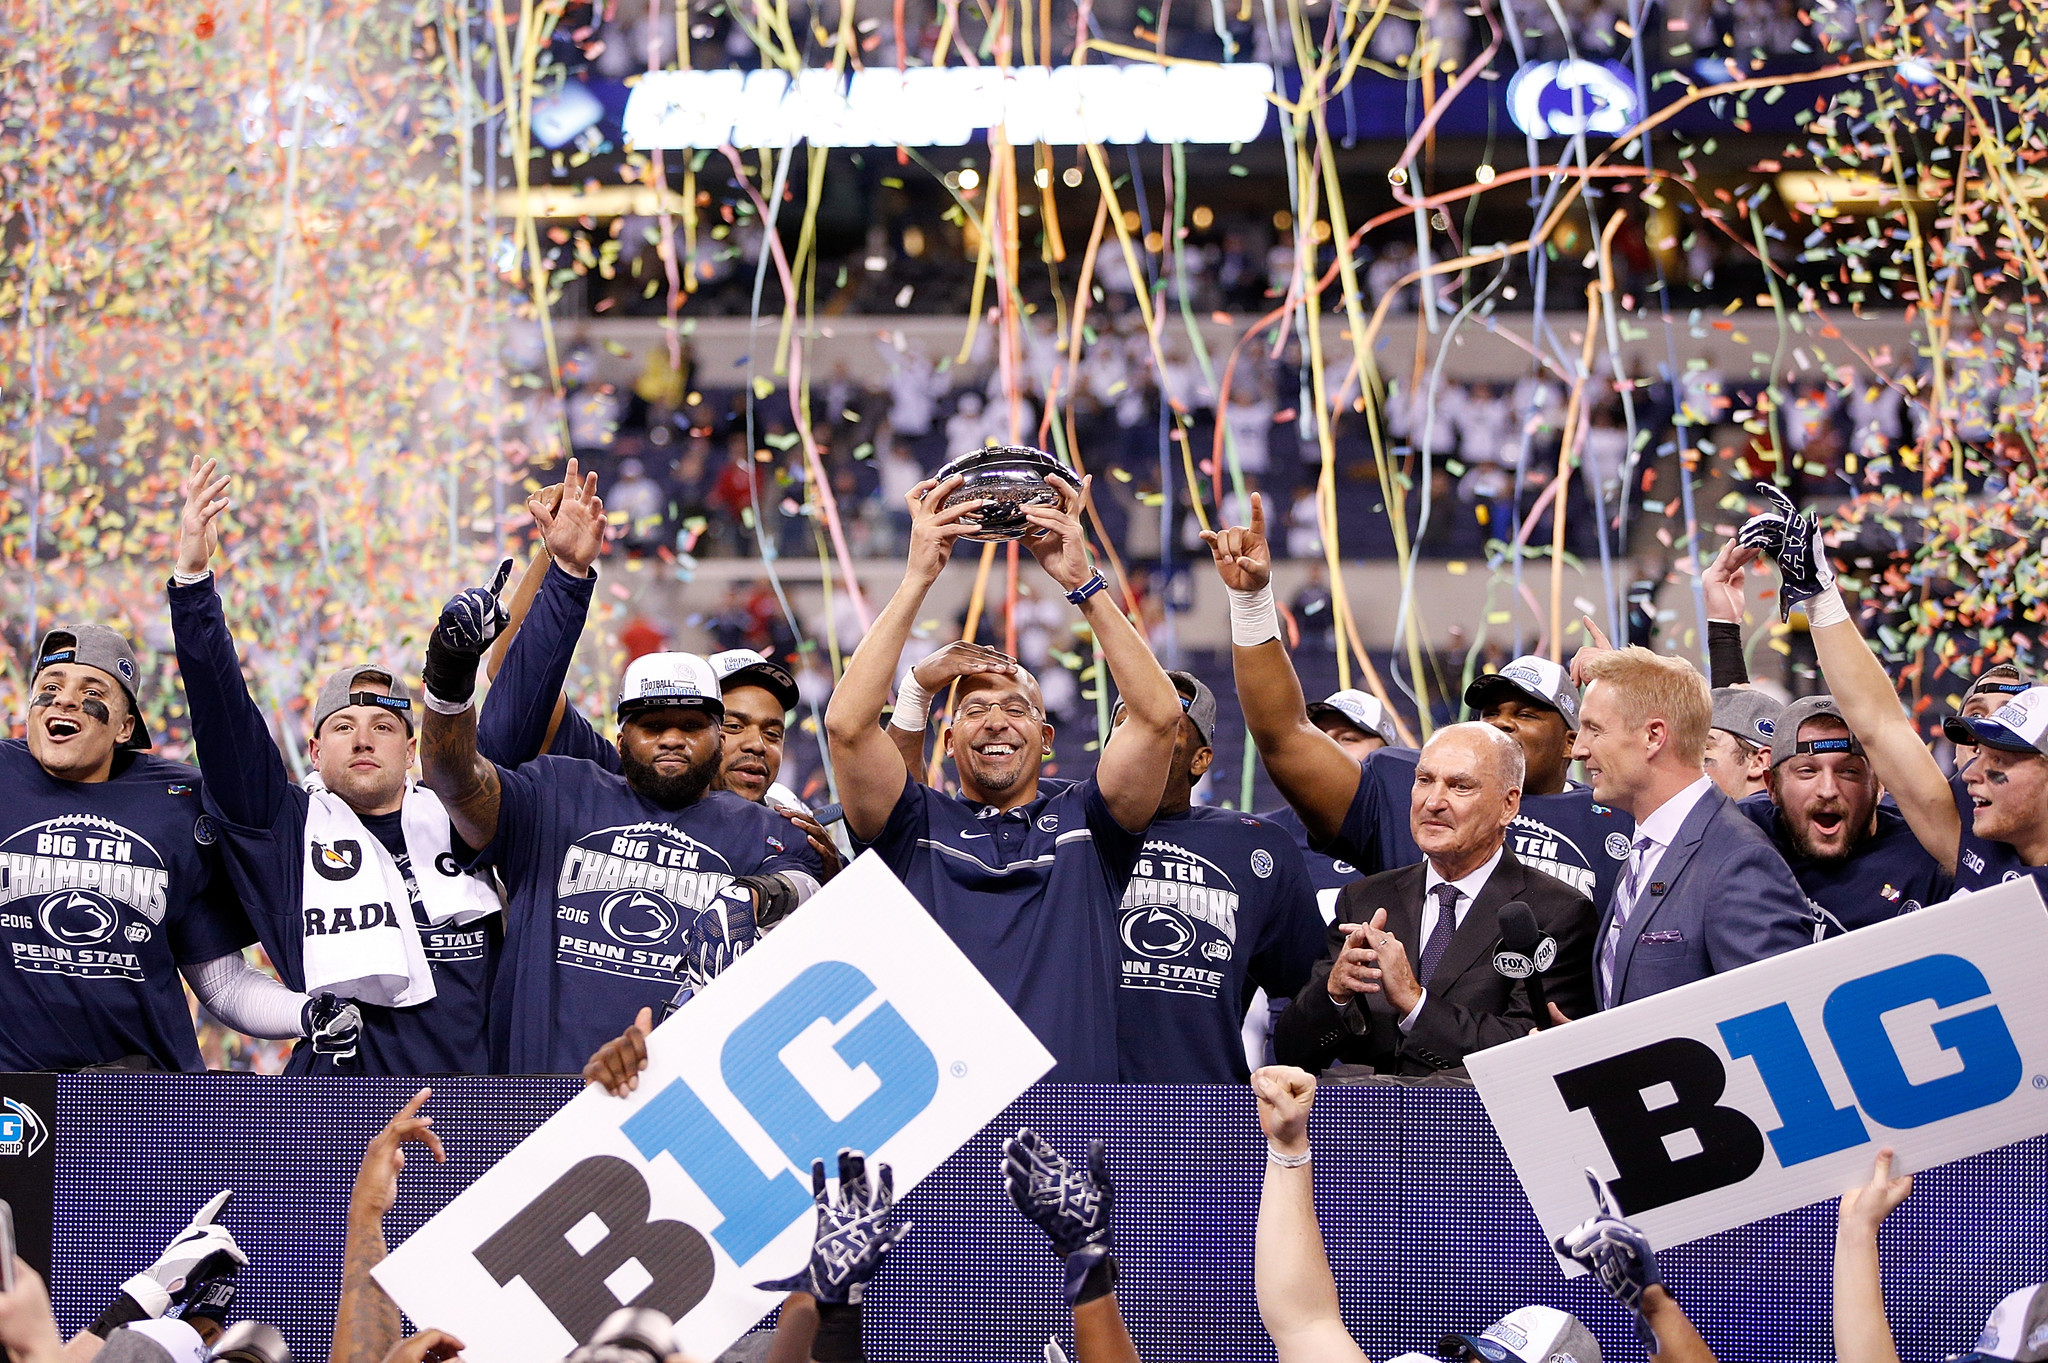 Mc-penn-state-to-recognize-2016-big-ten-champions-before-pitt-game-20170420